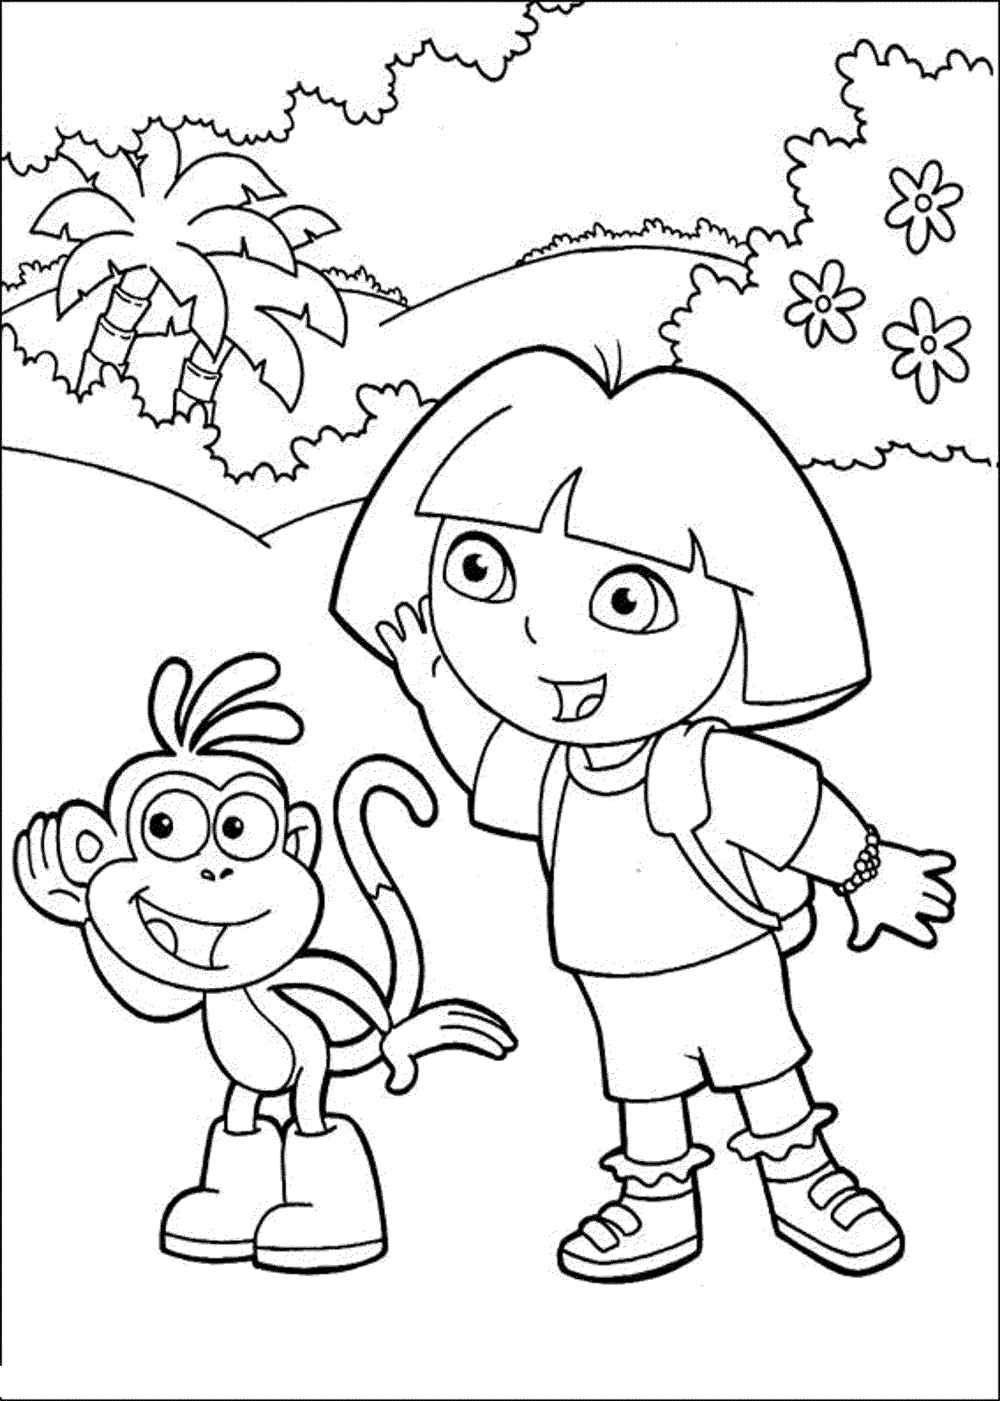 coloring dora cartoon print download dora coloring pages to learn new things dora cartoon coloring